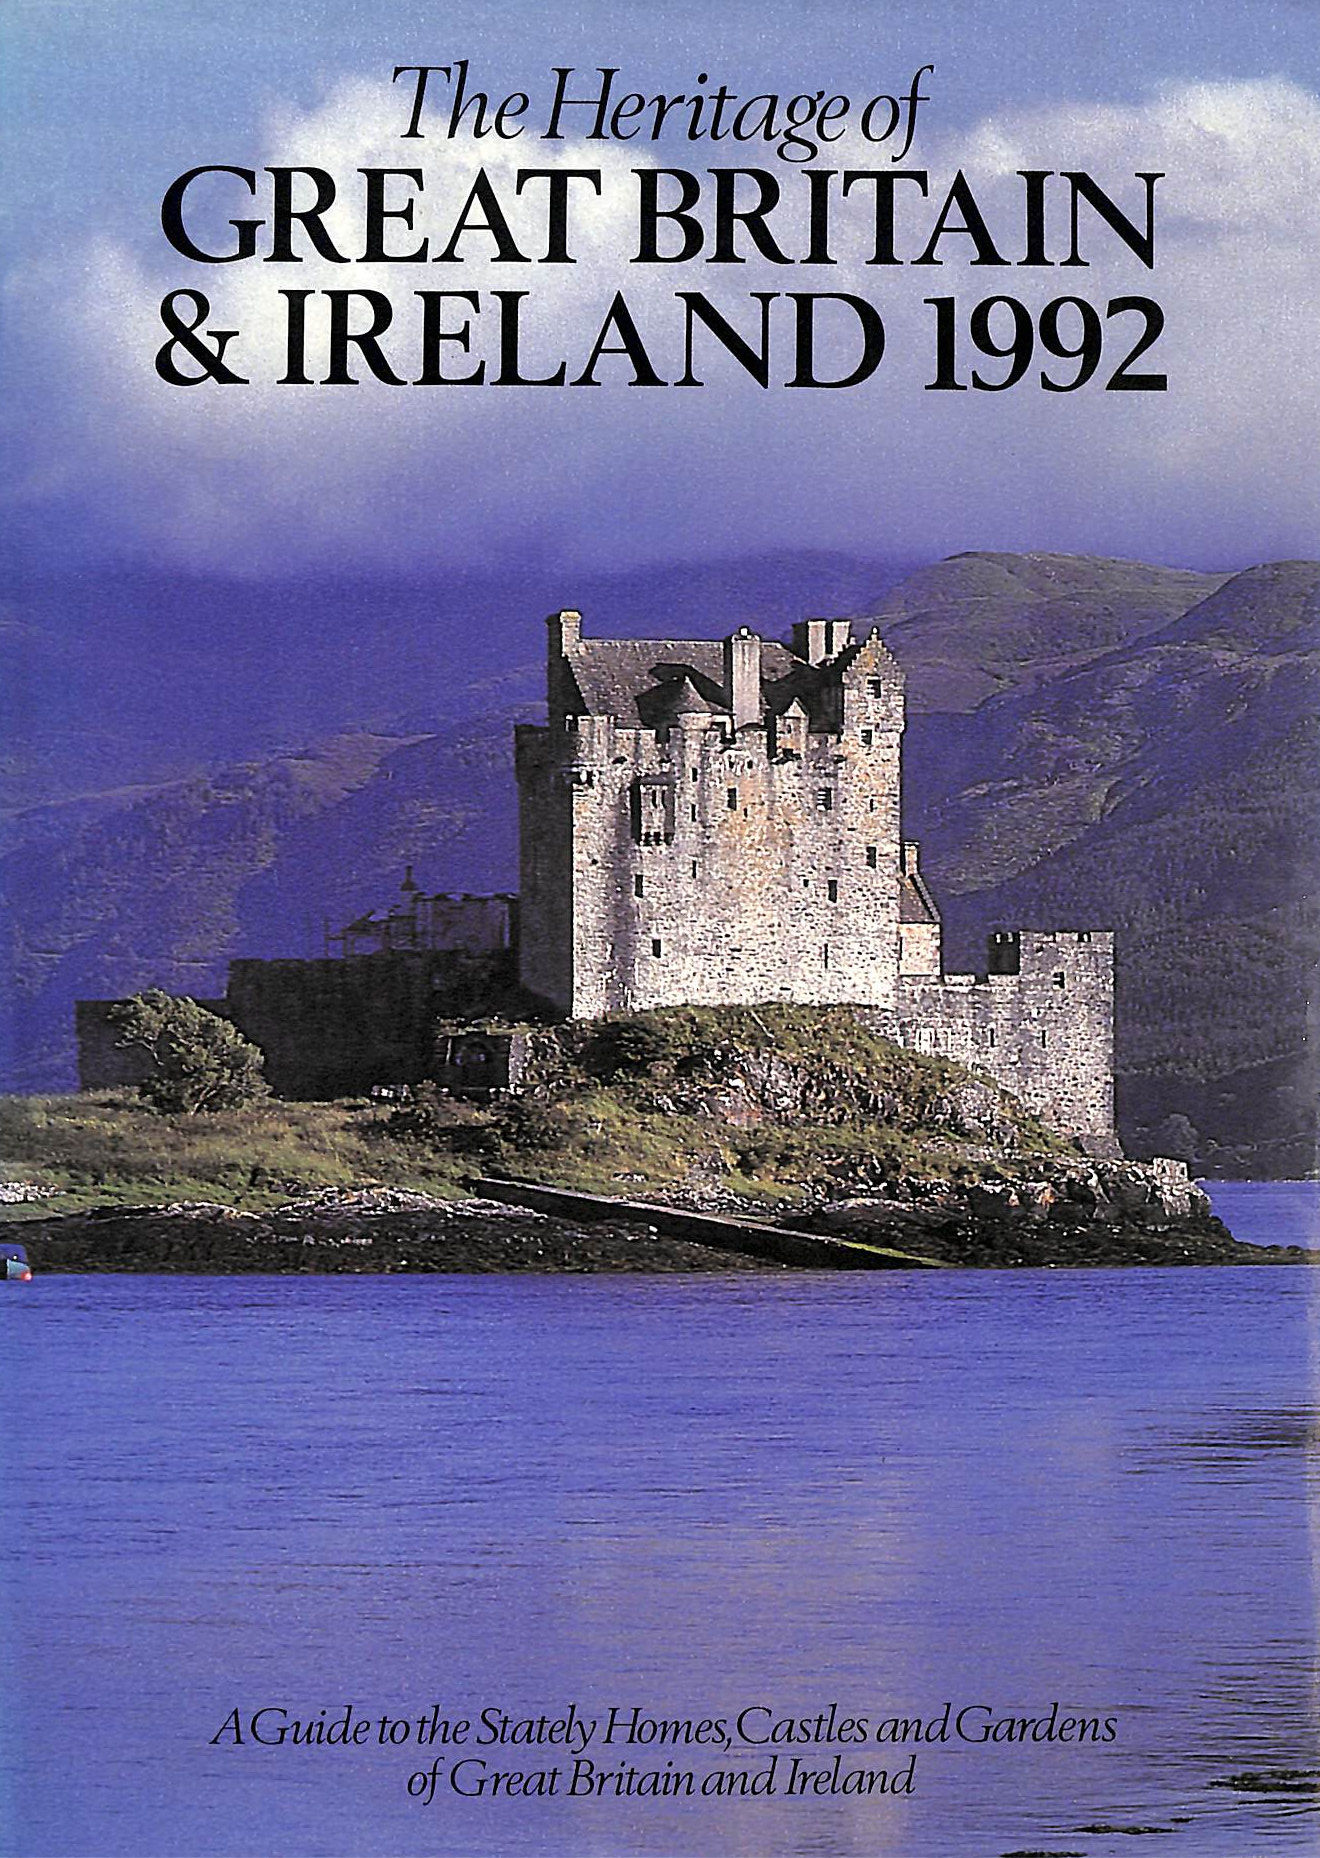 Image for The Heritage Of Great Britain & Ireland 1992, A Guide To The Stately Homes, Castles And Gardens Of Great Britain And Ireland